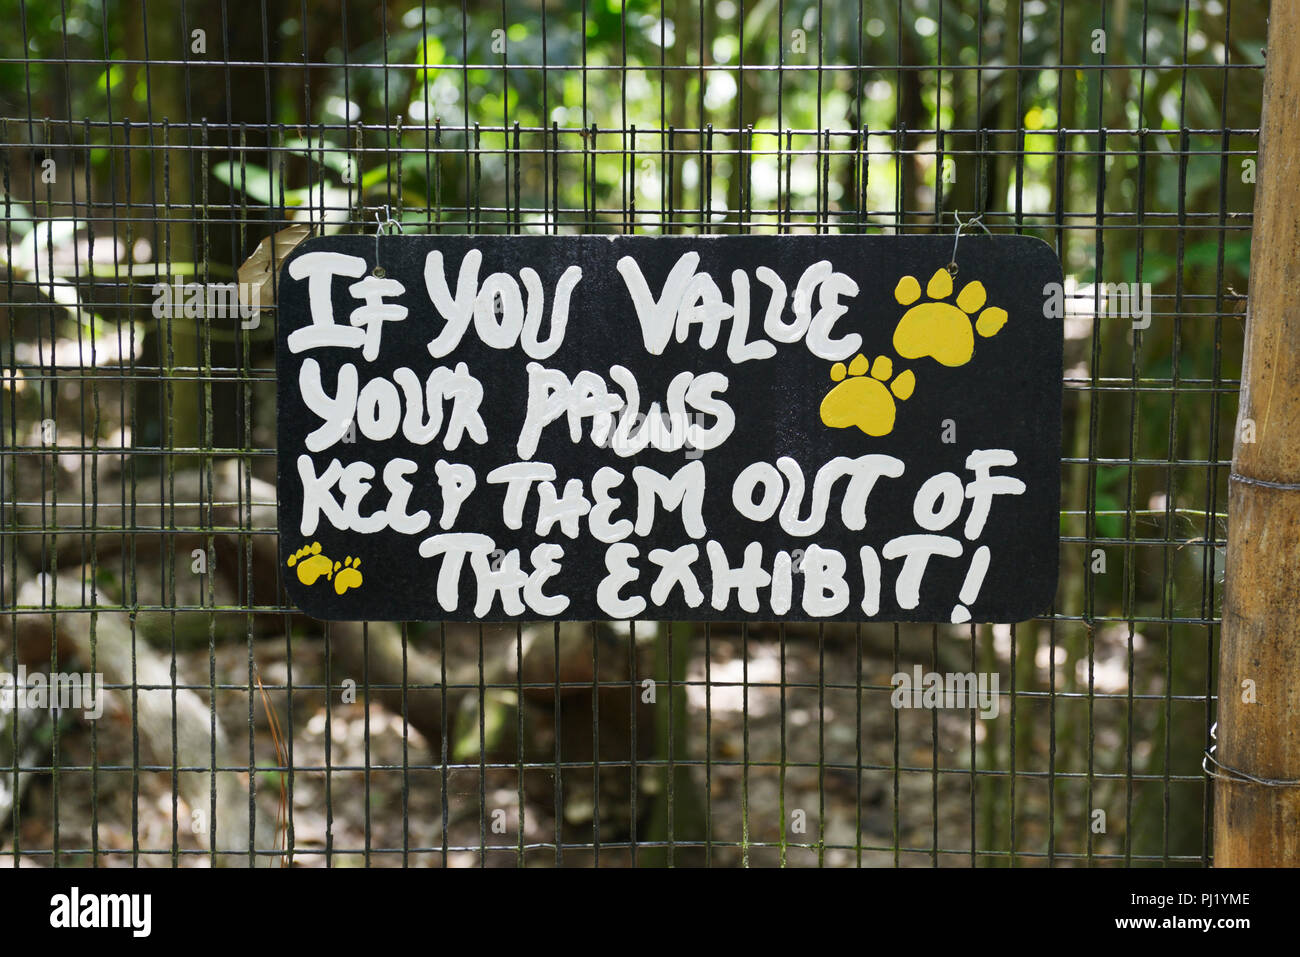 Belize Zoo - Stock Image